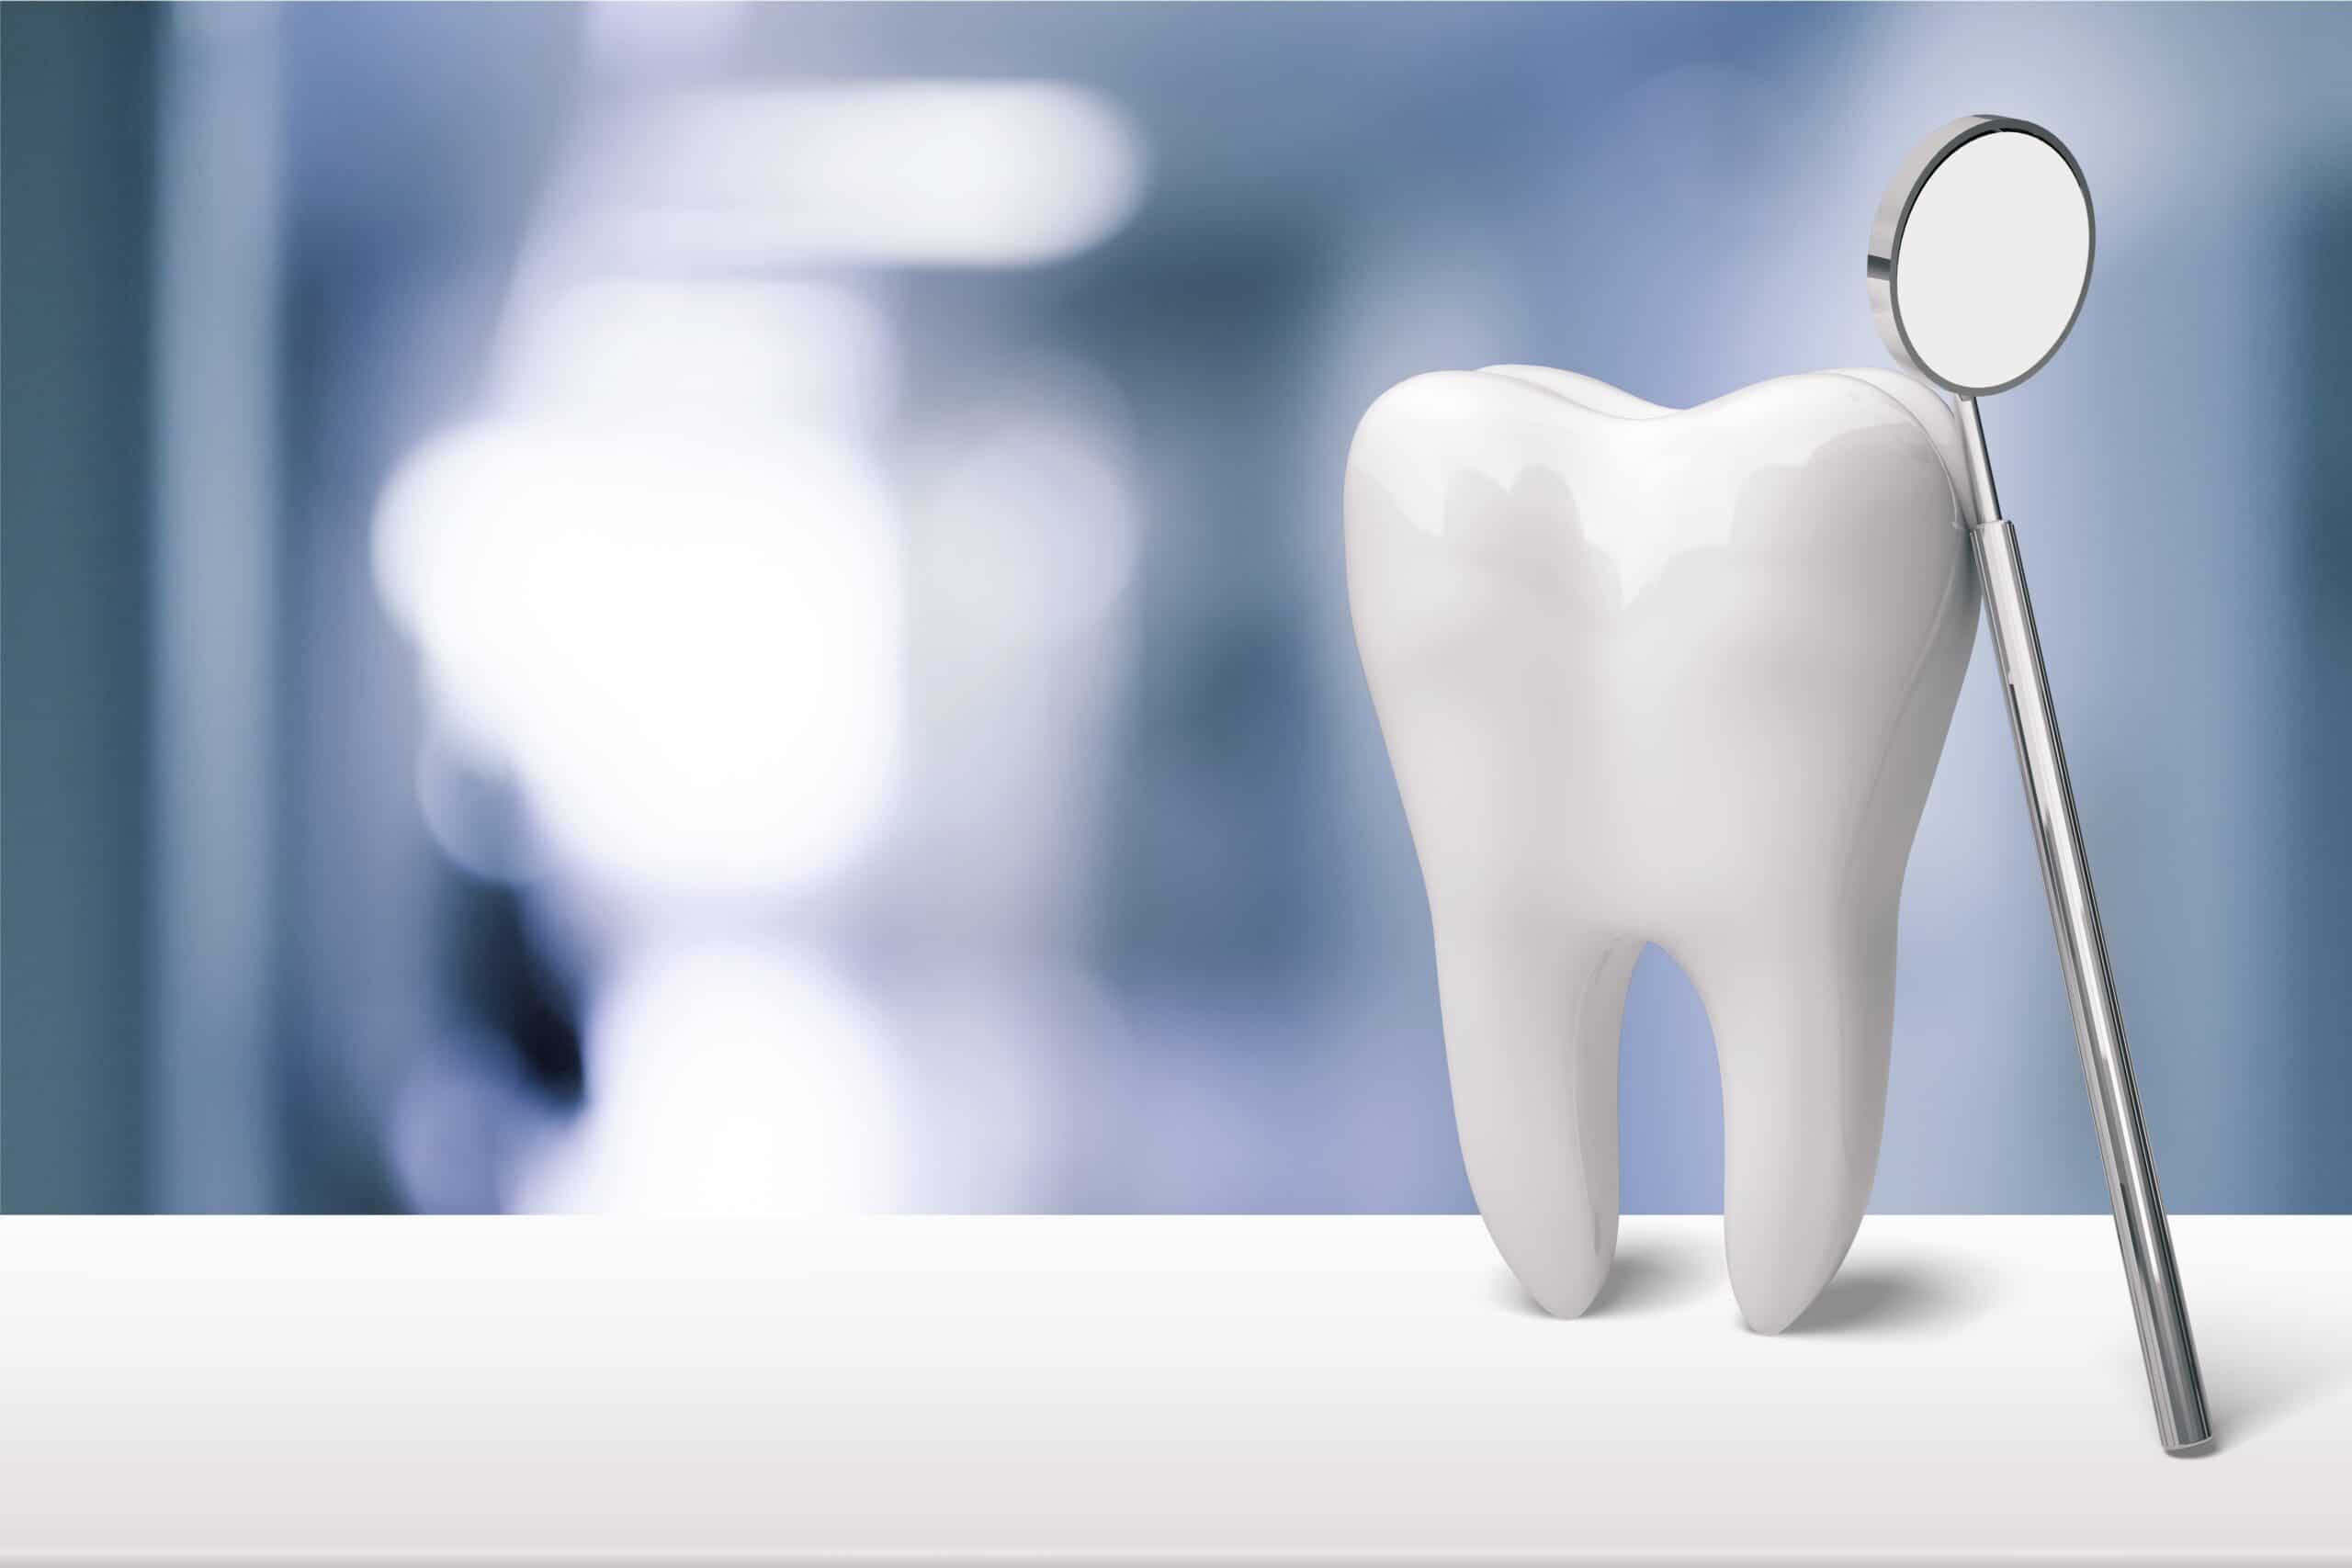 What Causes White Spots on Your Teeth